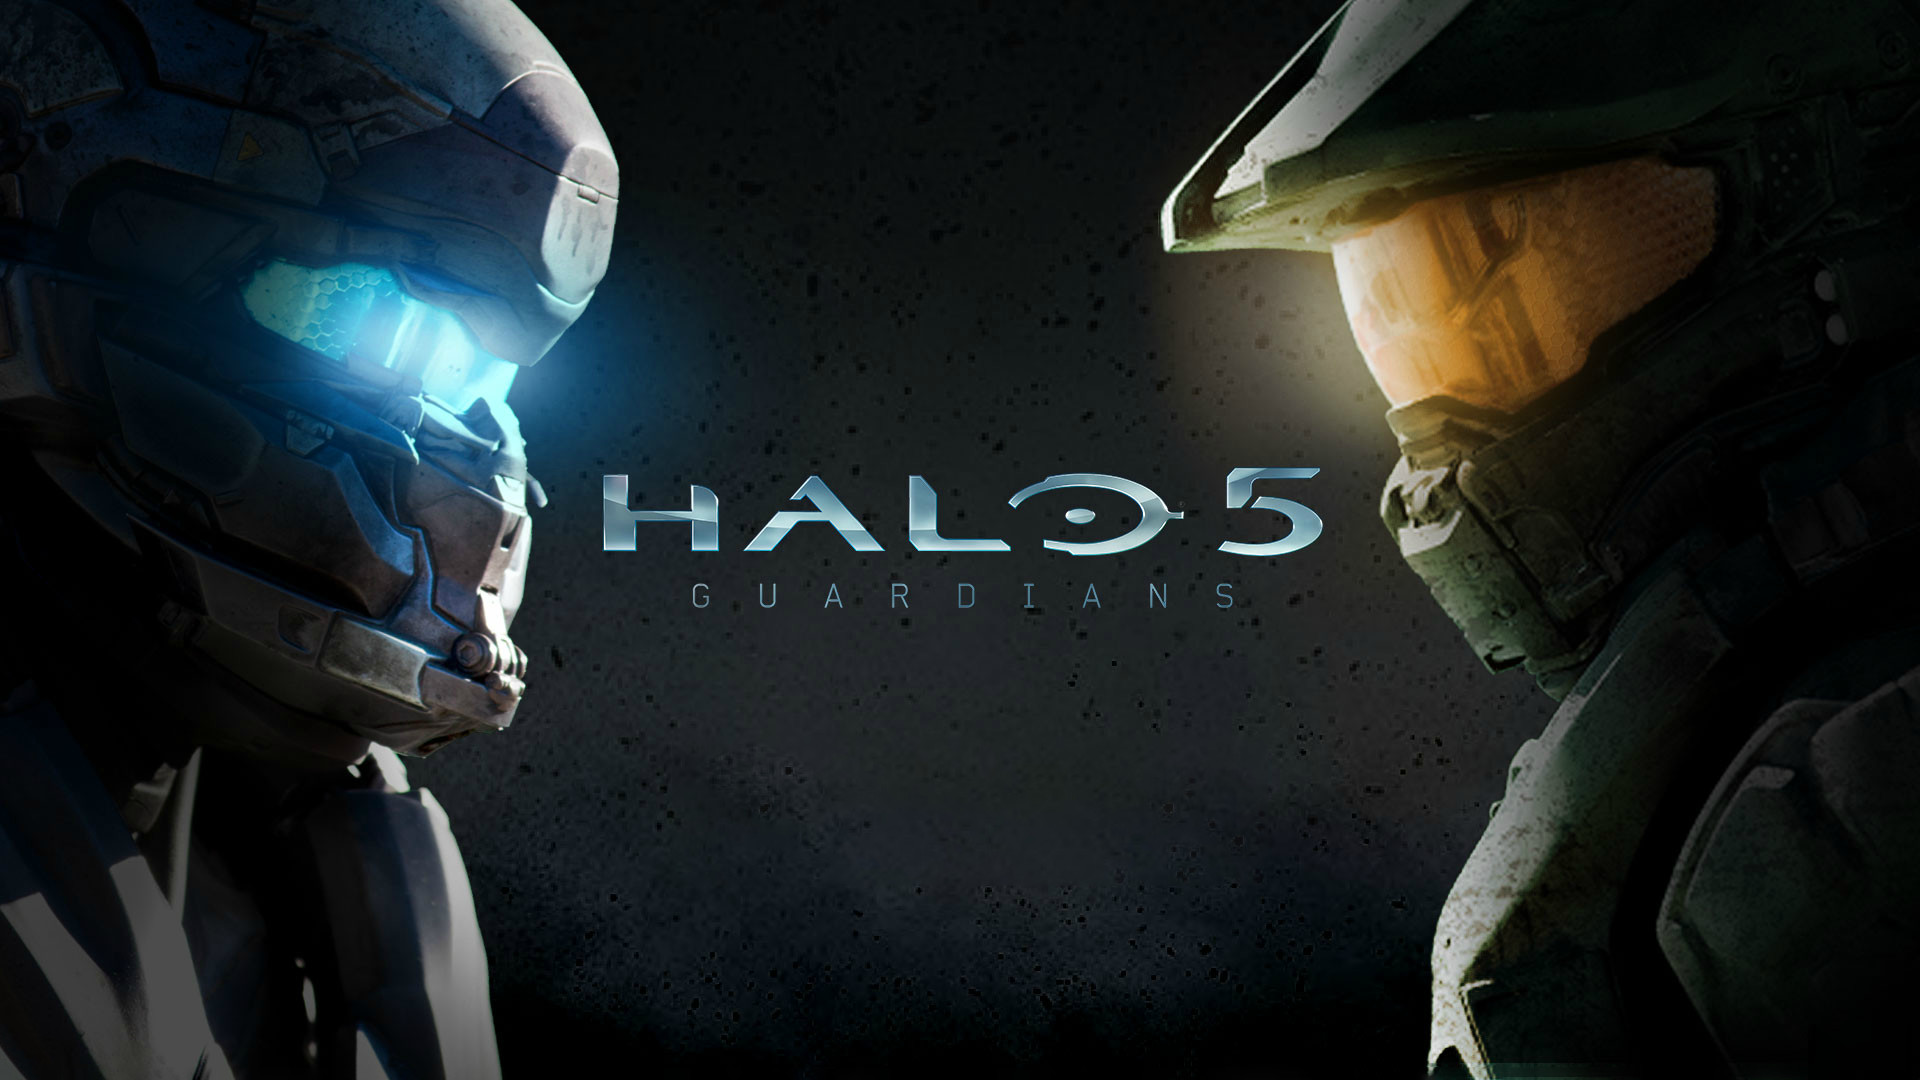 1920x1080 PBF.723 Halo 5 1080p (Mobile Compatible), 1.21 Mb